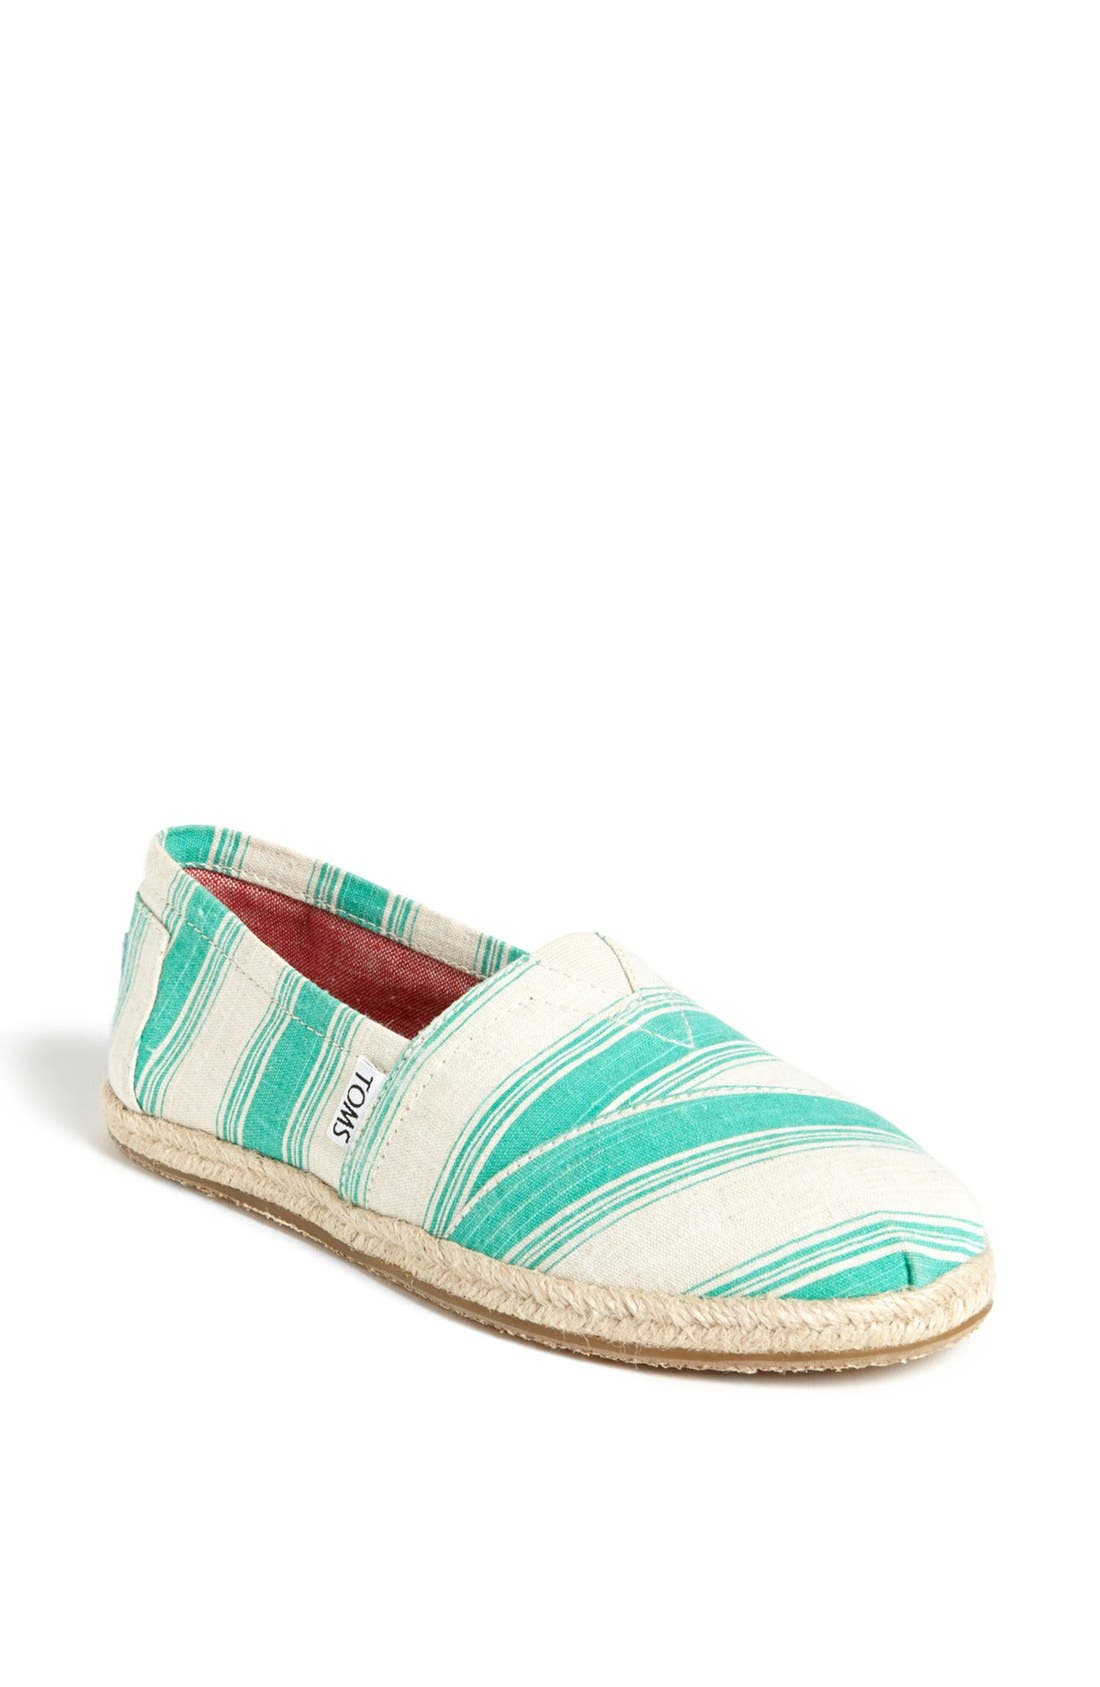 Alternate Image 1 Selected - TOMS 'Classics - Umbrella Stripe' Slip-On (Women)